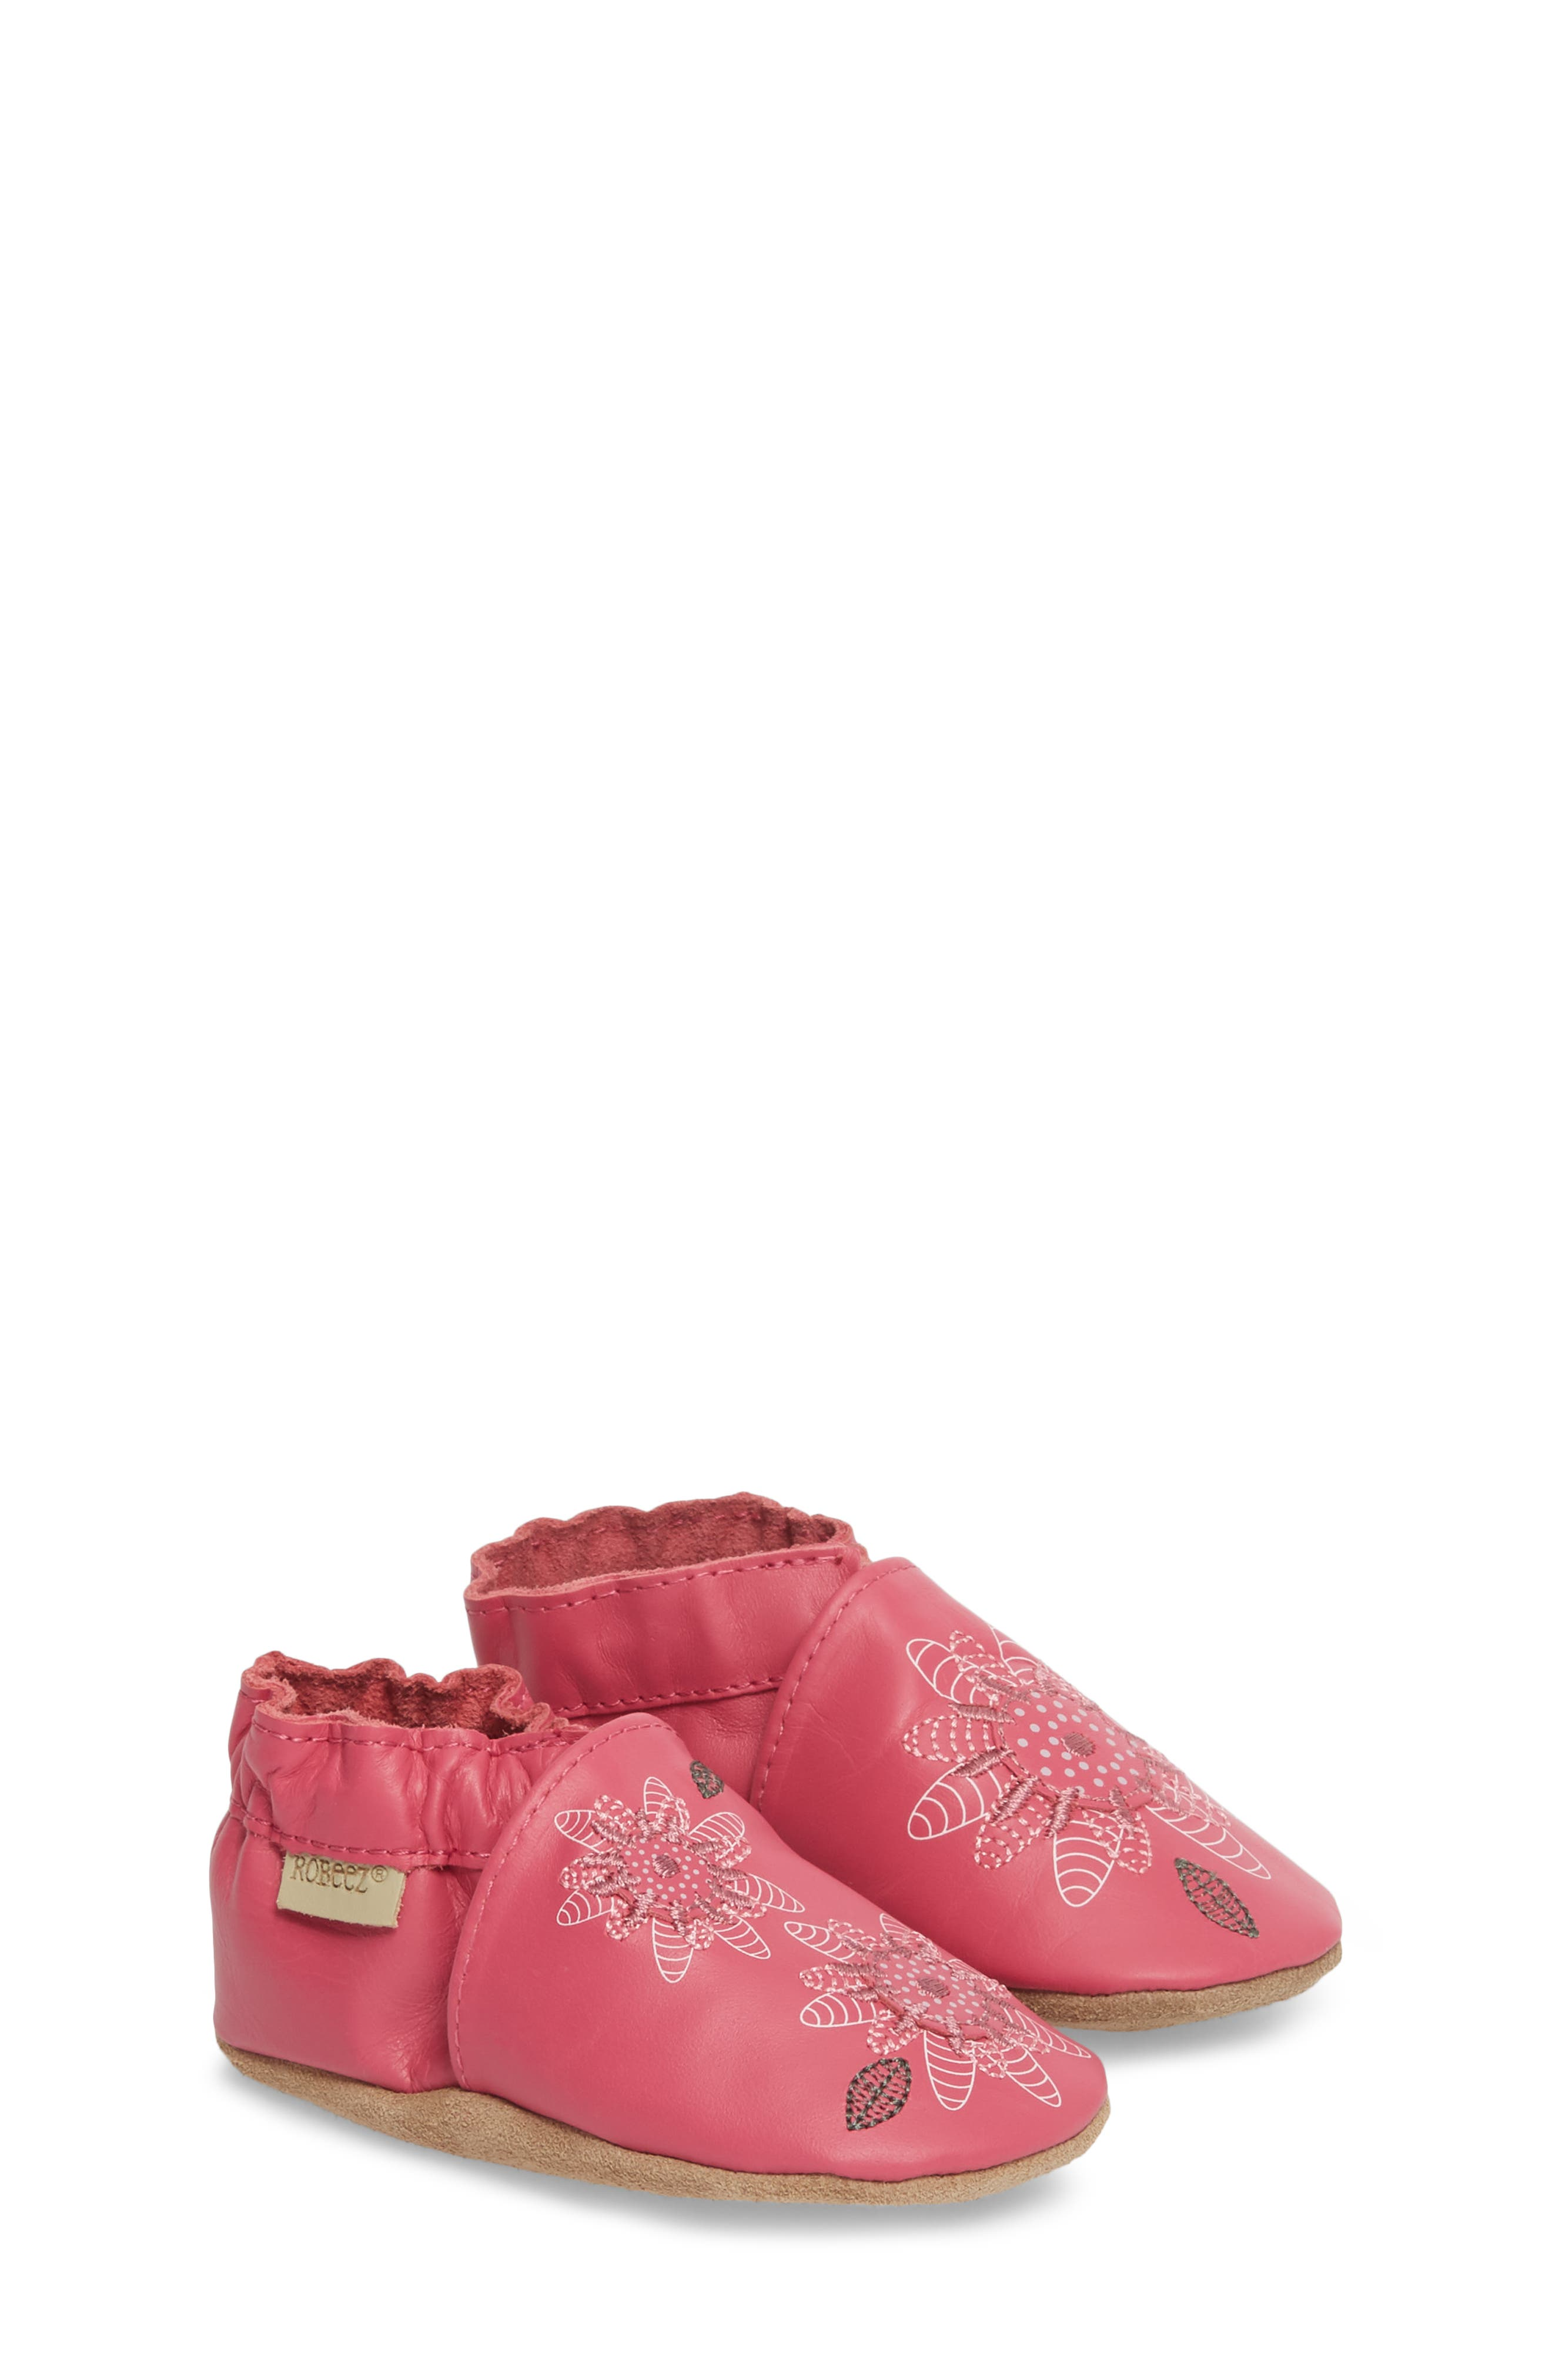 Fiona Flower Moccasin Crib Shoe,                         Main,                         color, HOT PINK